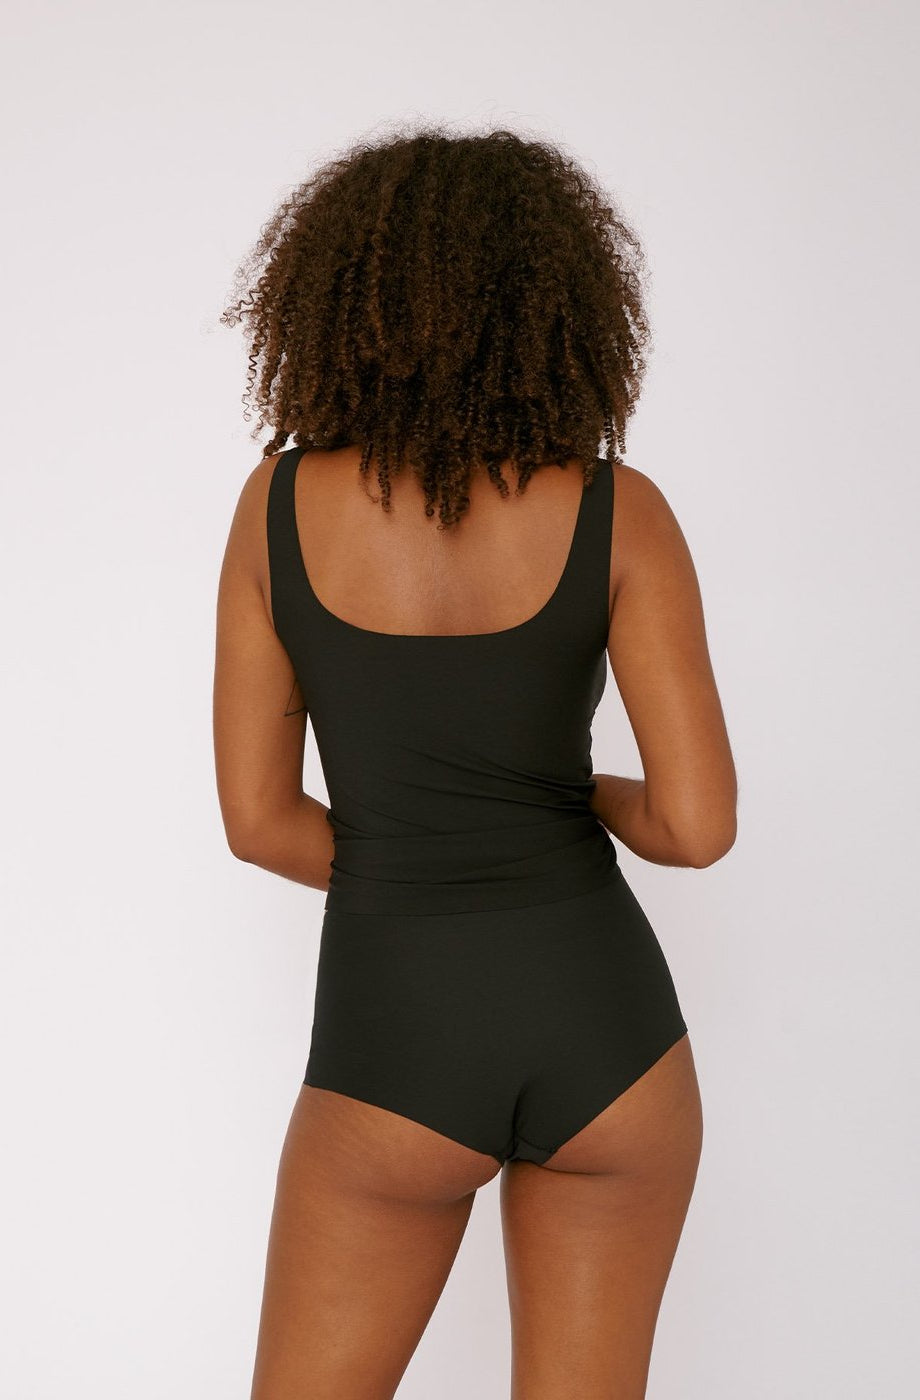 Organic Basics Invisible Cheeky High Rise 2-Pack in Taupe with an ultra-comforting and seamless shape